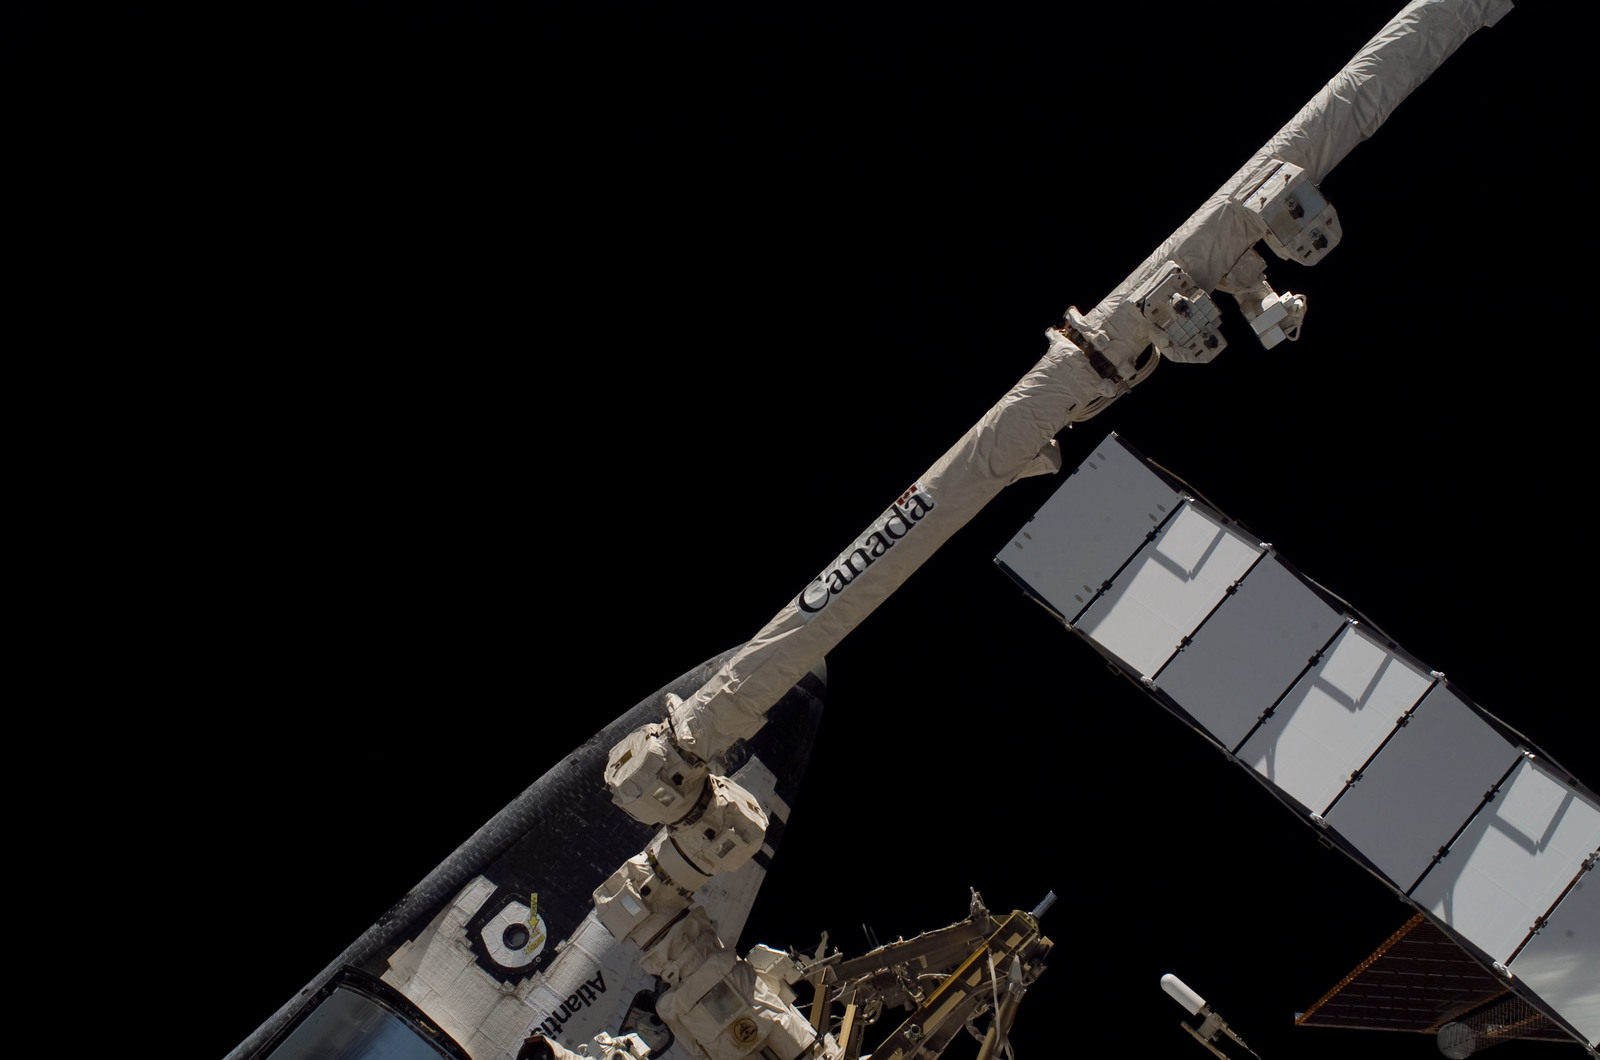 S115E05730 - STS-115 - STS-115 Space Shuttle Atlantis docked on the ISS during Joint Operations